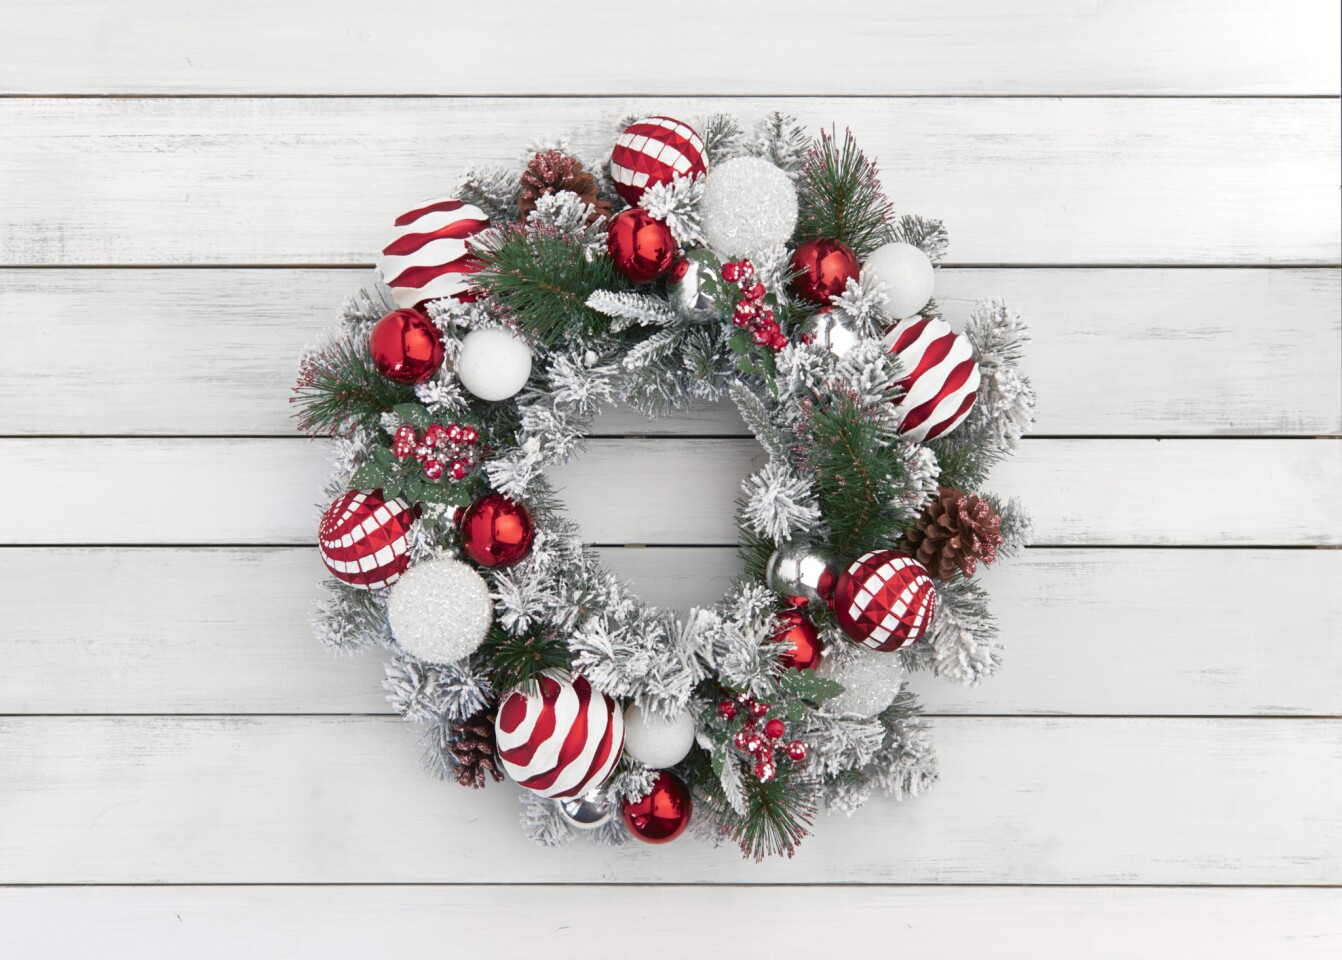 This festive faux wreath is embedded with 30 clear lights to add sparkle to the interwoven silver-and-red ornaments, snow-flocked needles, juniper berries and pine cones. $49.99 at Orchard Supply Hardware stores.